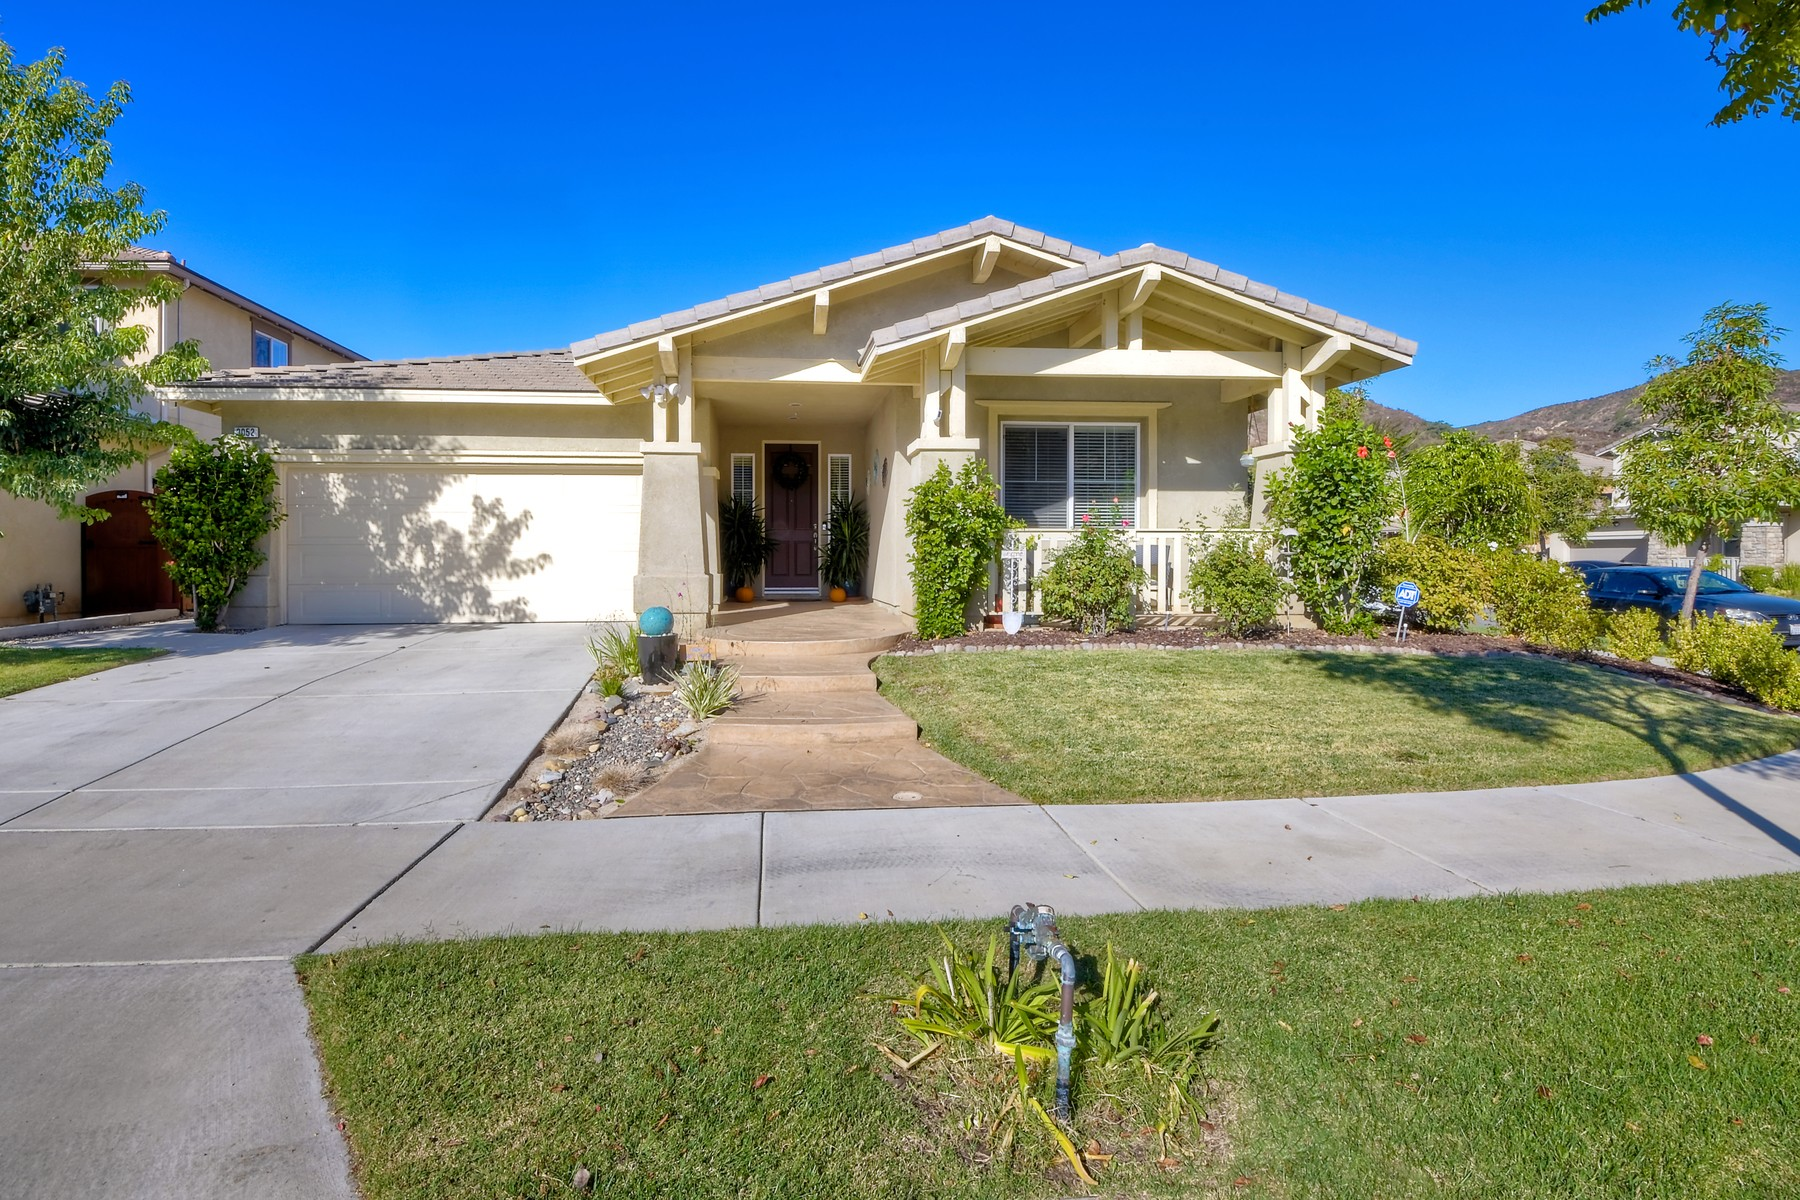 Single Family Homes for Sale at 3052 Wohlford Drive Escondido, California 92027 United States